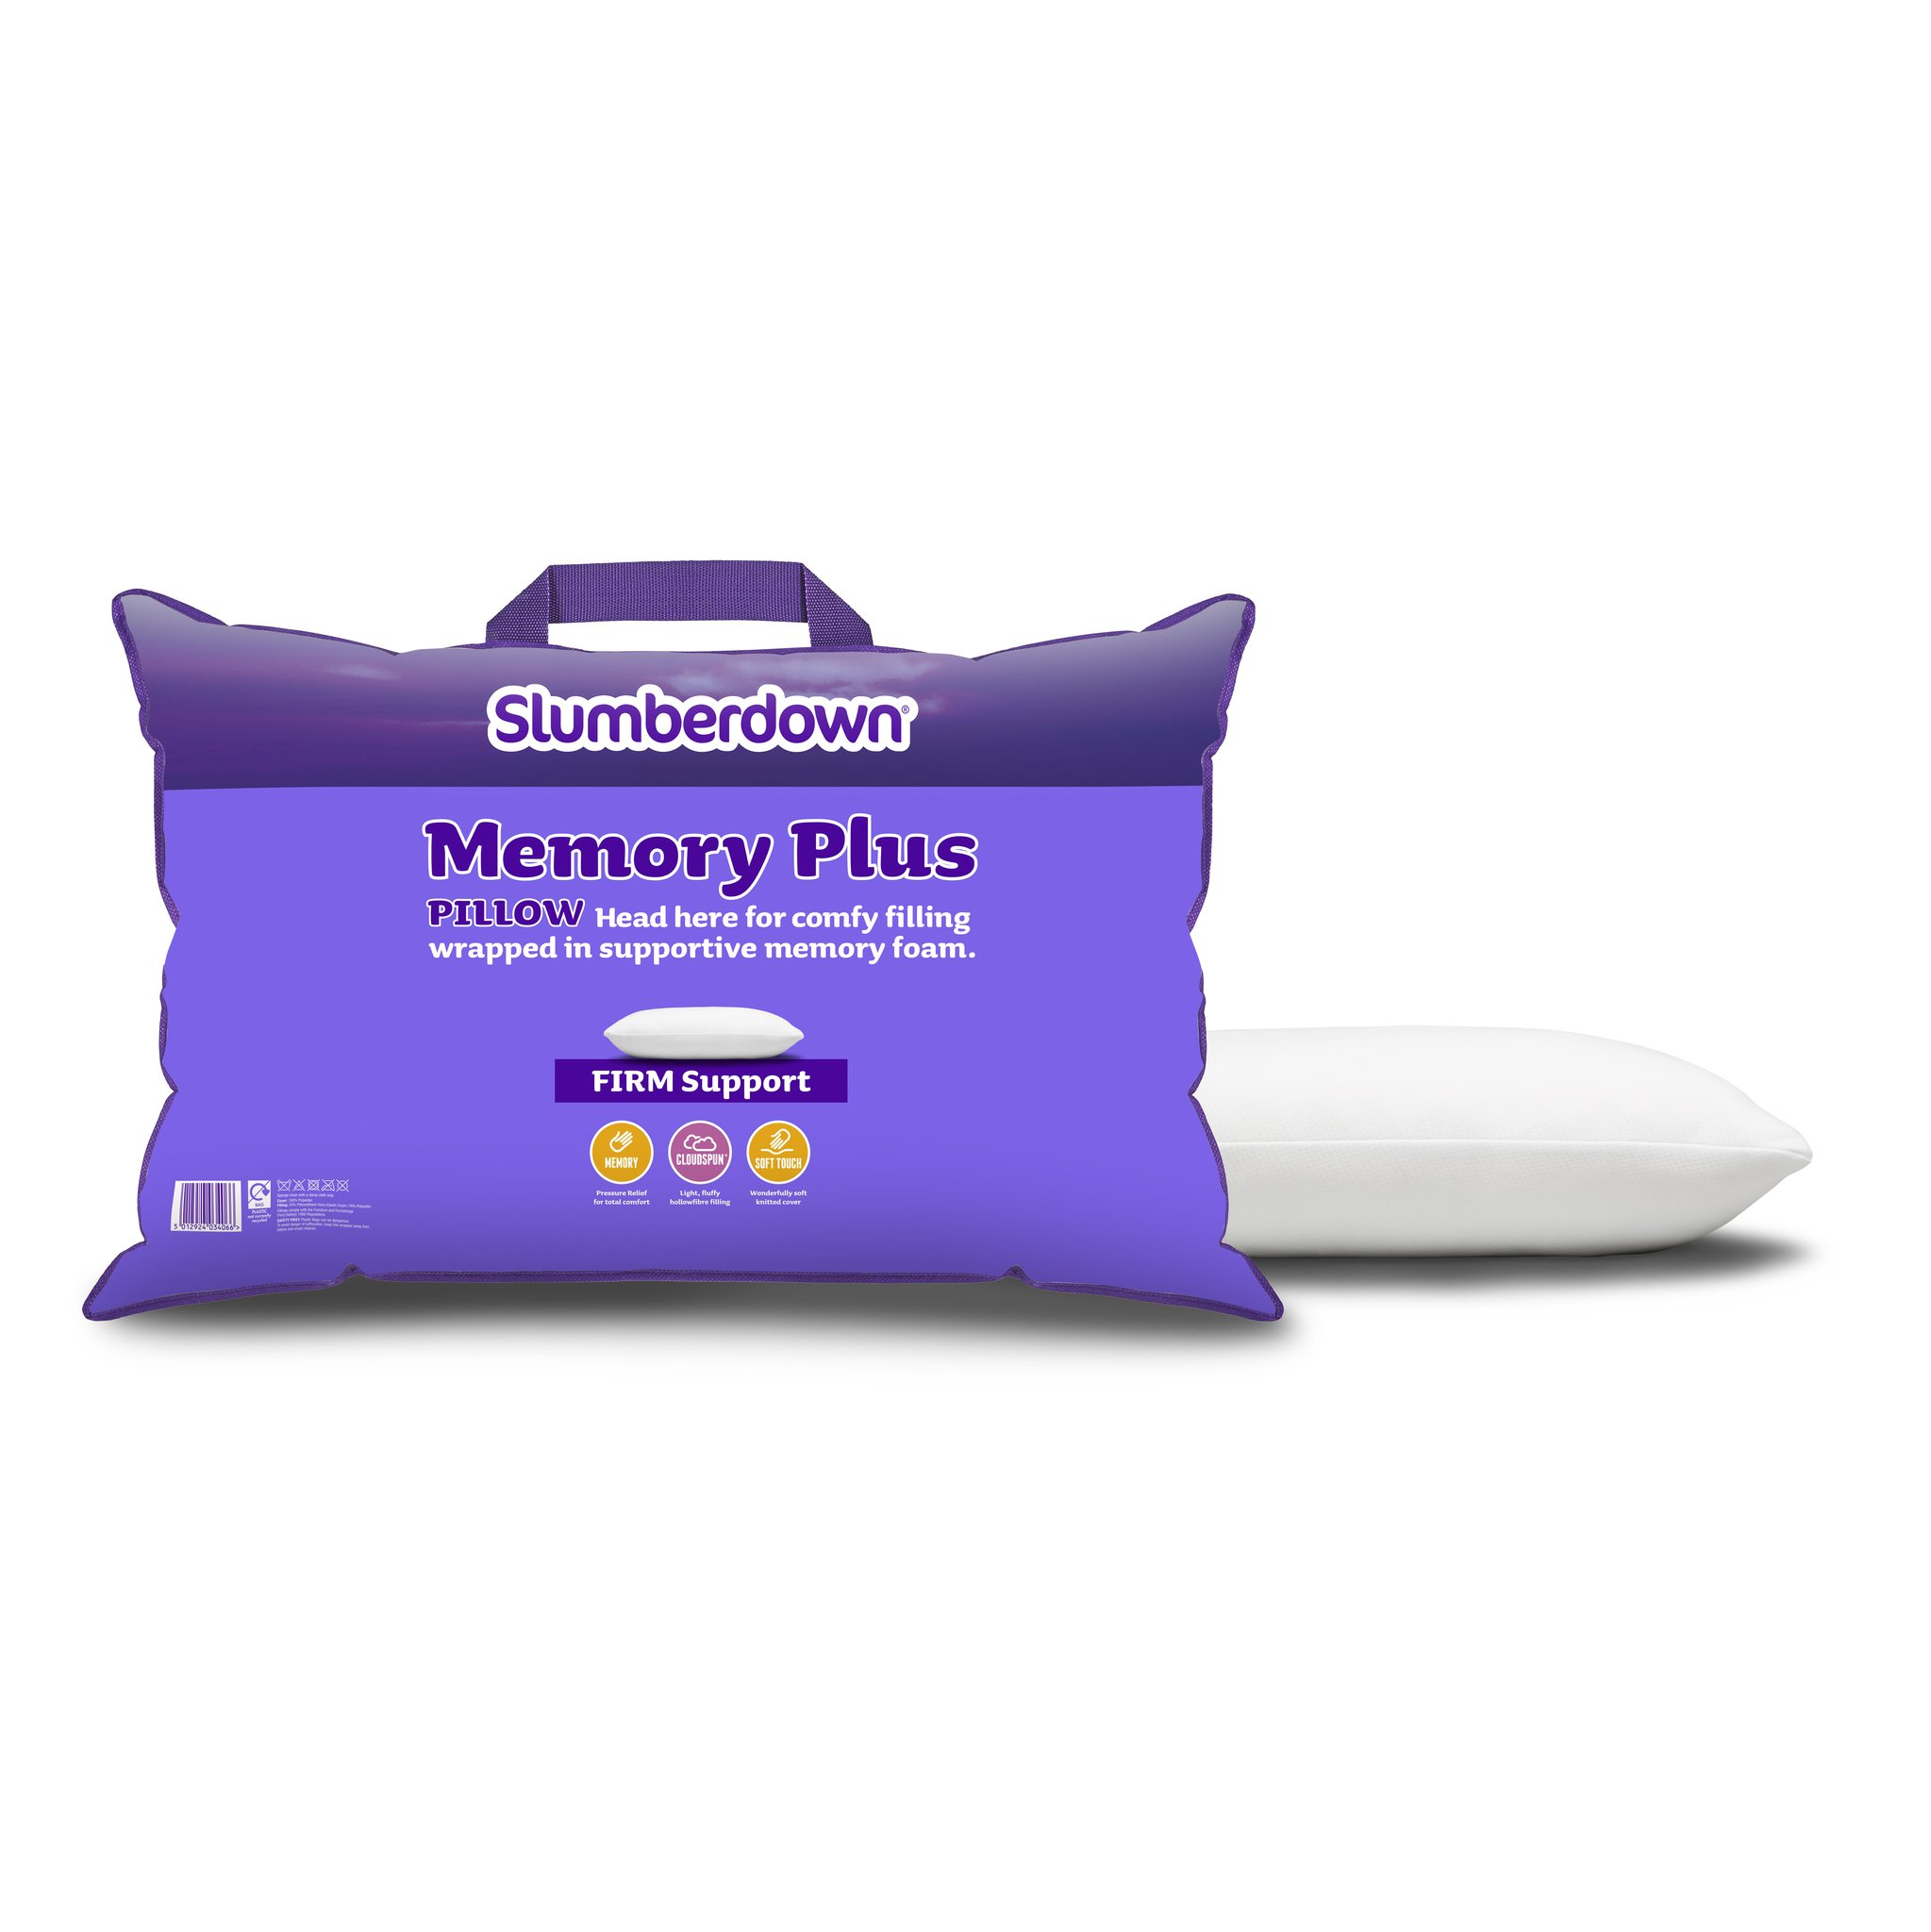 Slumberdown Traditional Memory Foam Pillow Review : Slumberdown Memory Foam Plus Pillow eBay